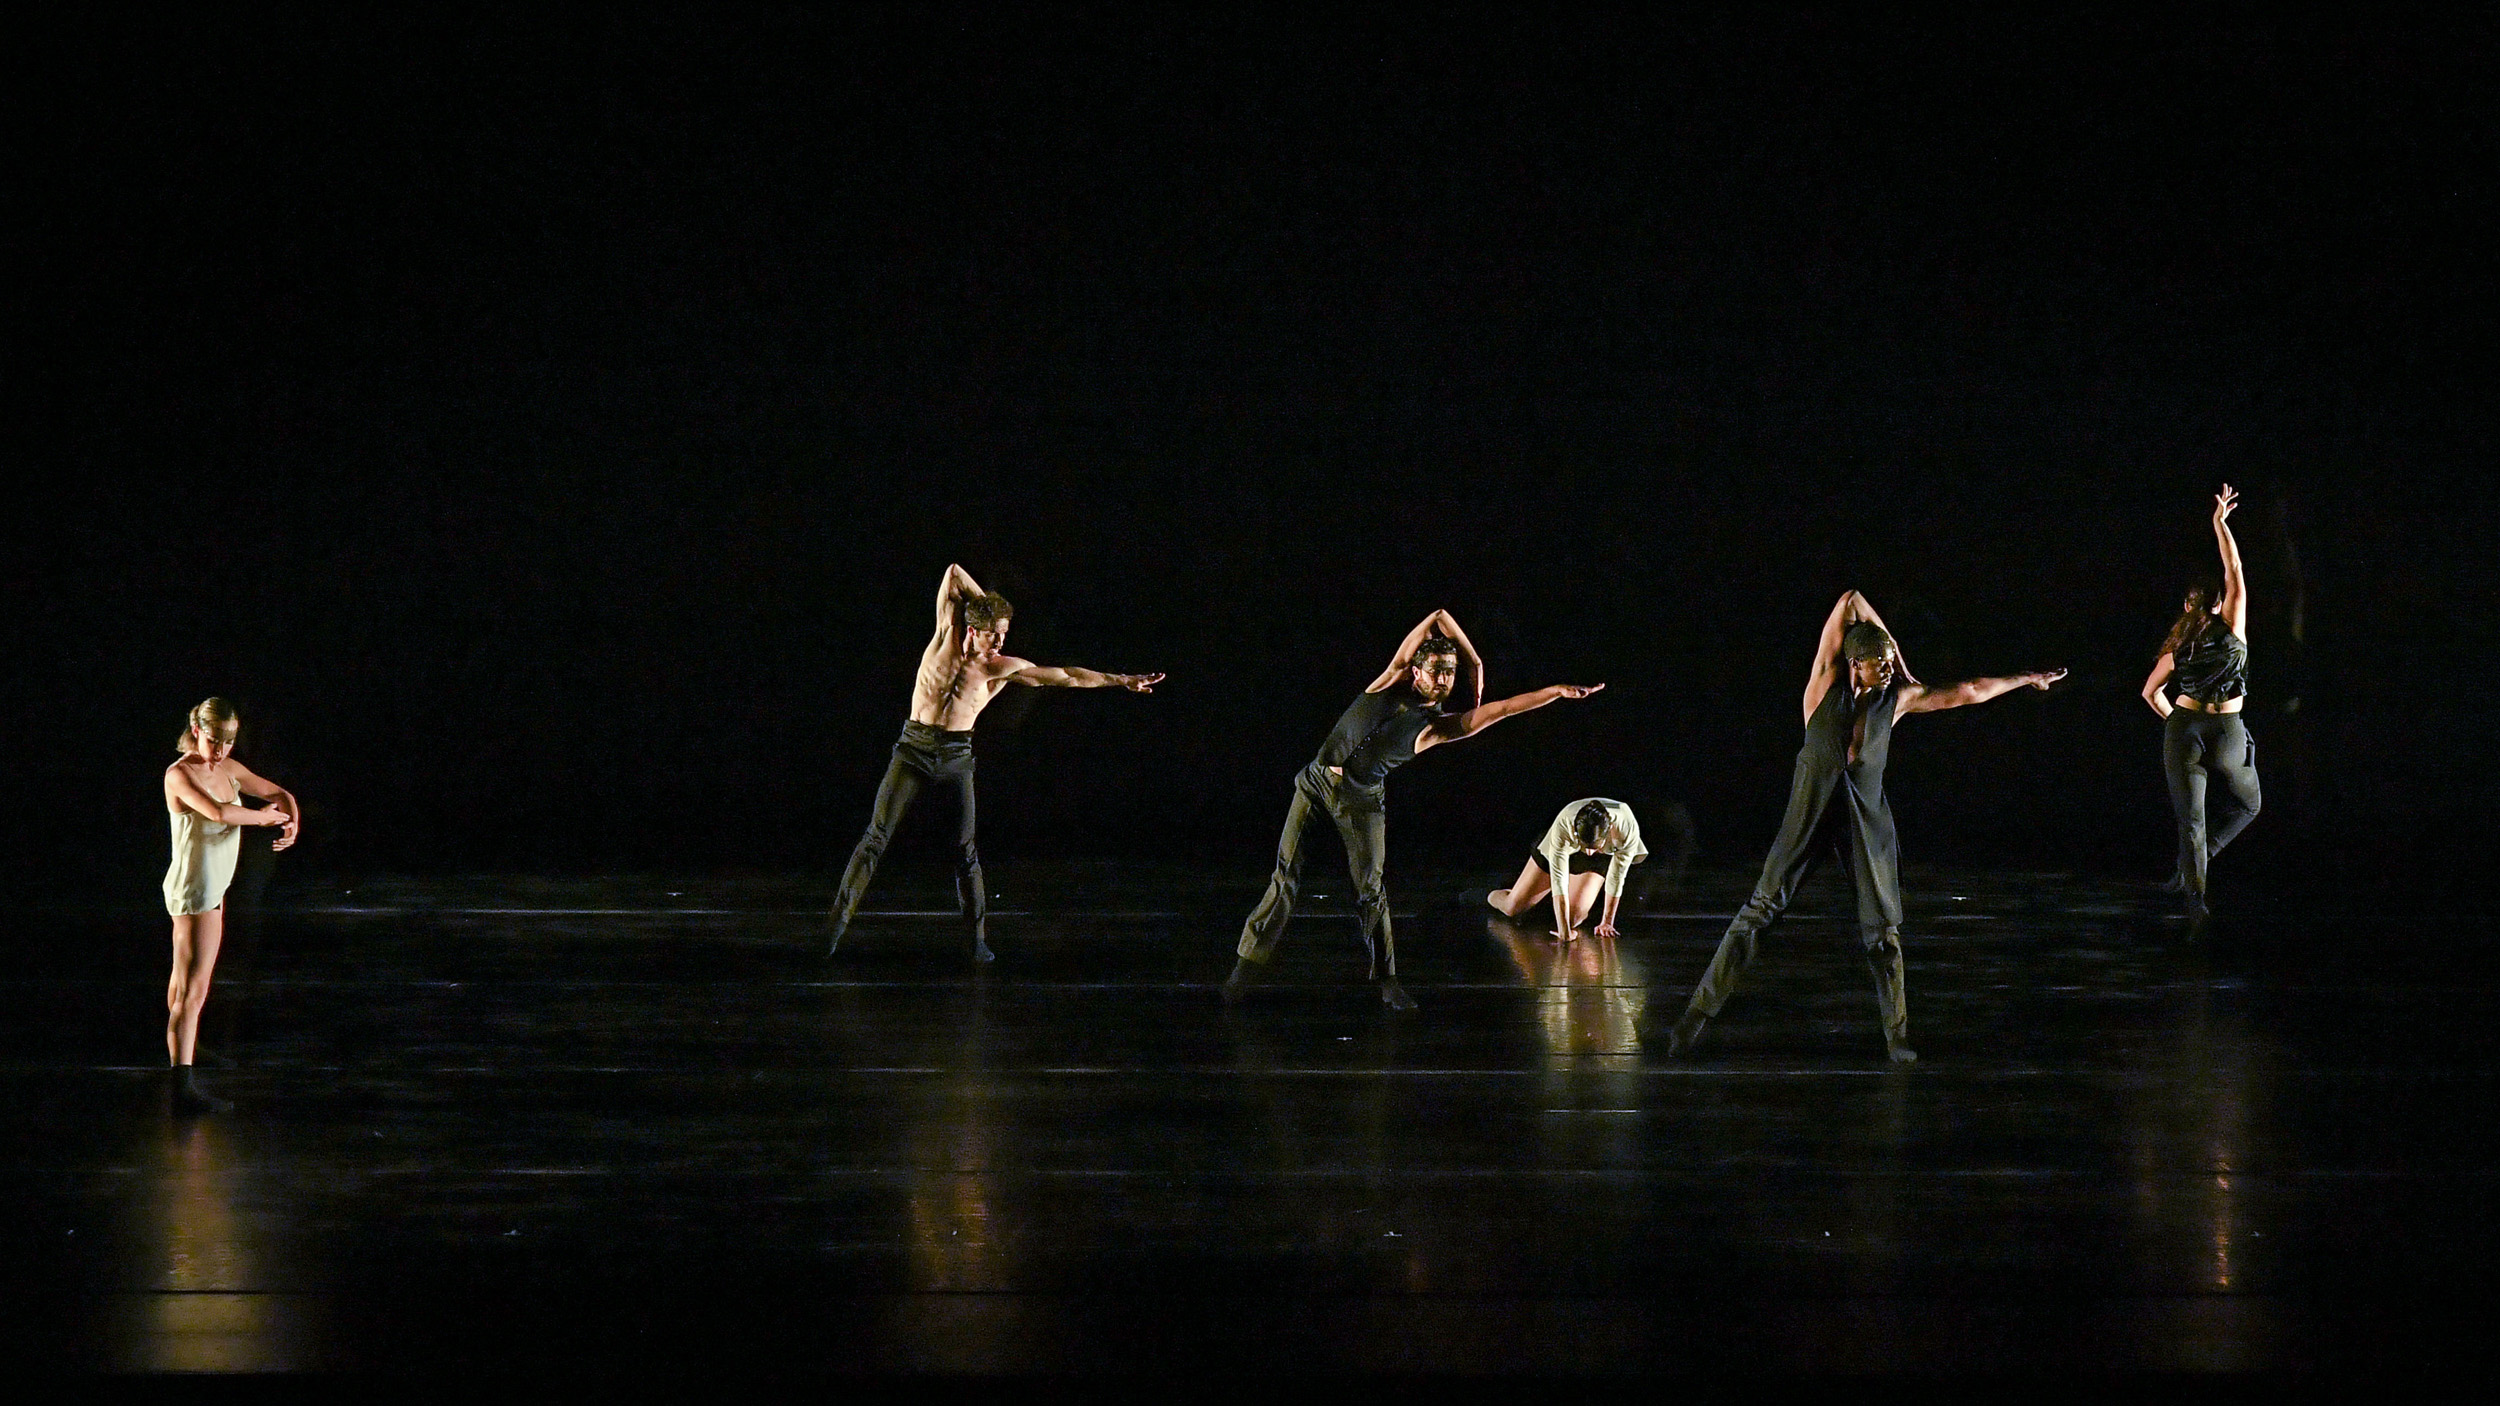 BODYTRAFFIC performing at the Wallis Annenberg Center for the Performing Arts May 31, 2018. Beyond the Edge of the Frame. Choreography: Sidra Bell. (l-r) Natalie Leibert, Guzmán Rosado, Joseph Davis, Tina Finkelman Berkett, Jamal White, Haley Heckethorn. PHOTO CREDIT: Rob Latour.